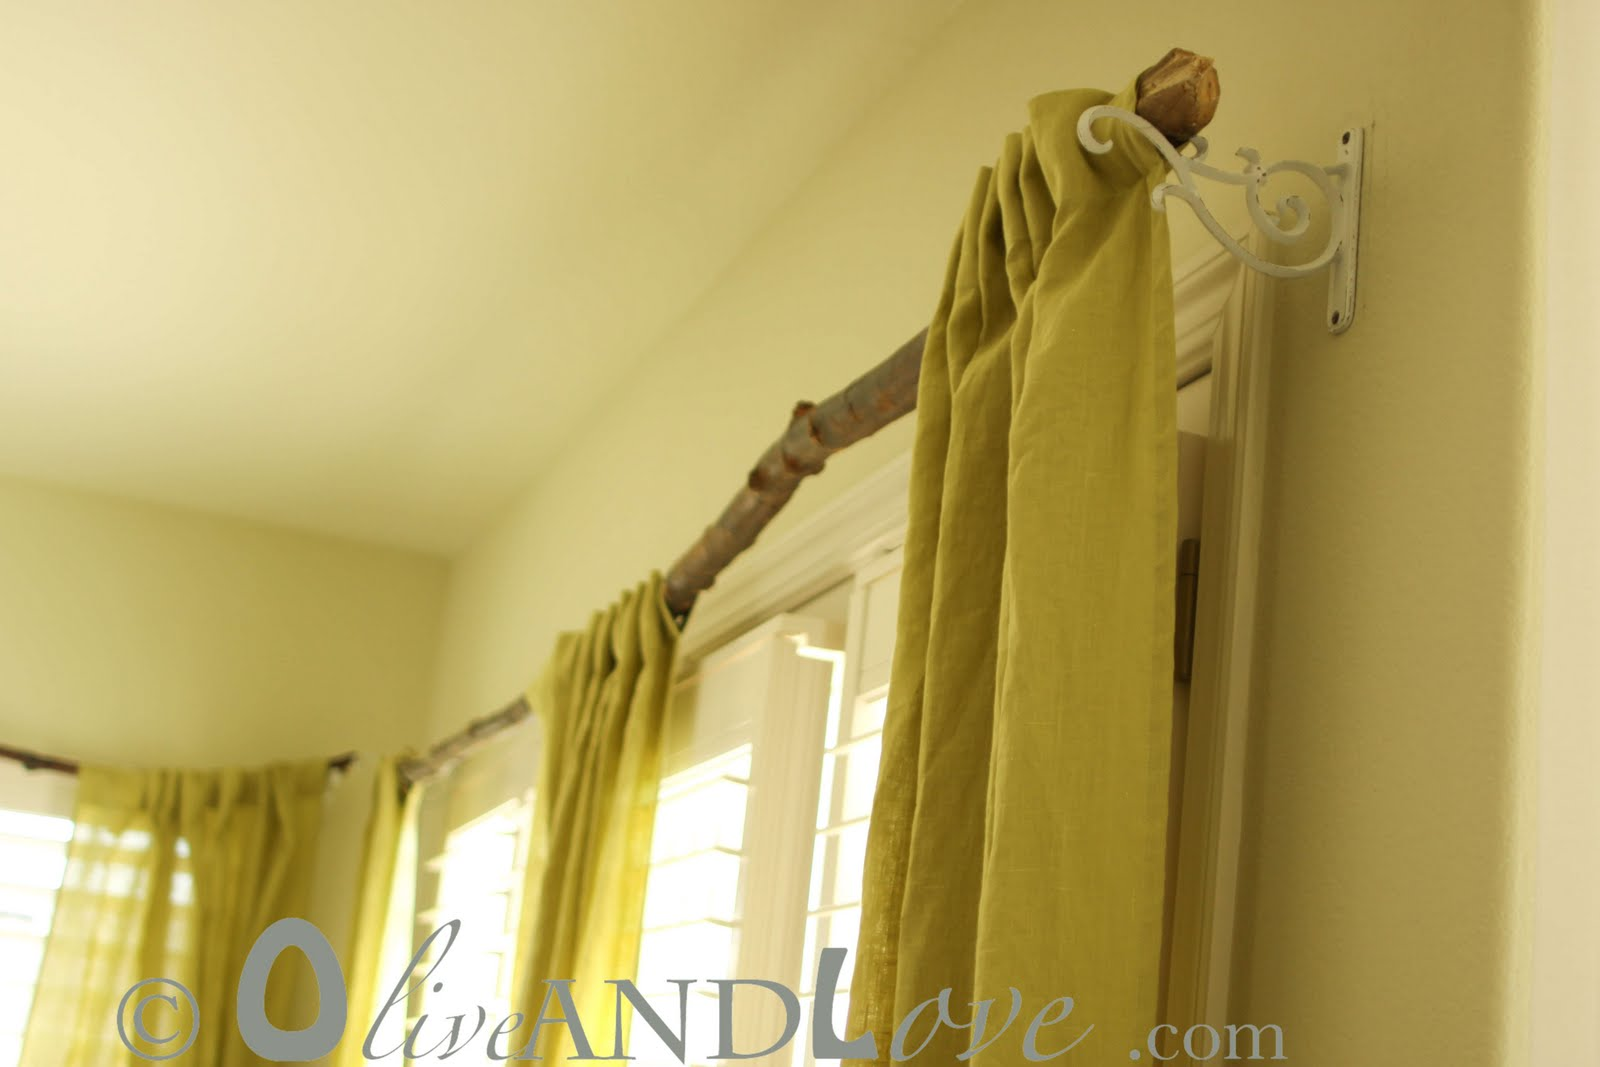 Five Creative Curtain Projects From The DIY Files